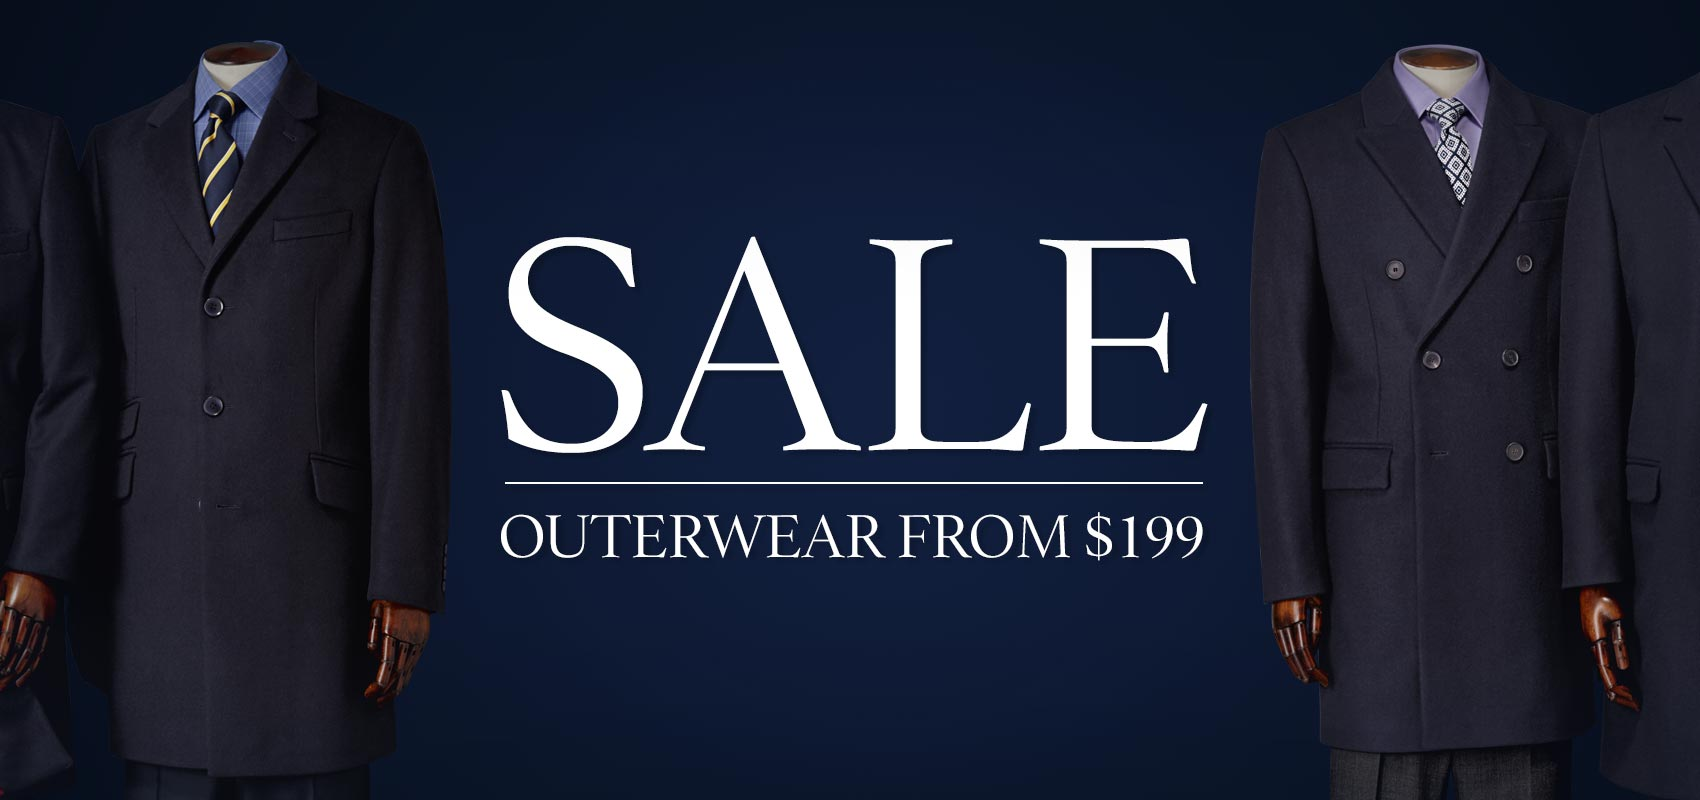 Charles Tyrwhitt Outerwear Sale from $199